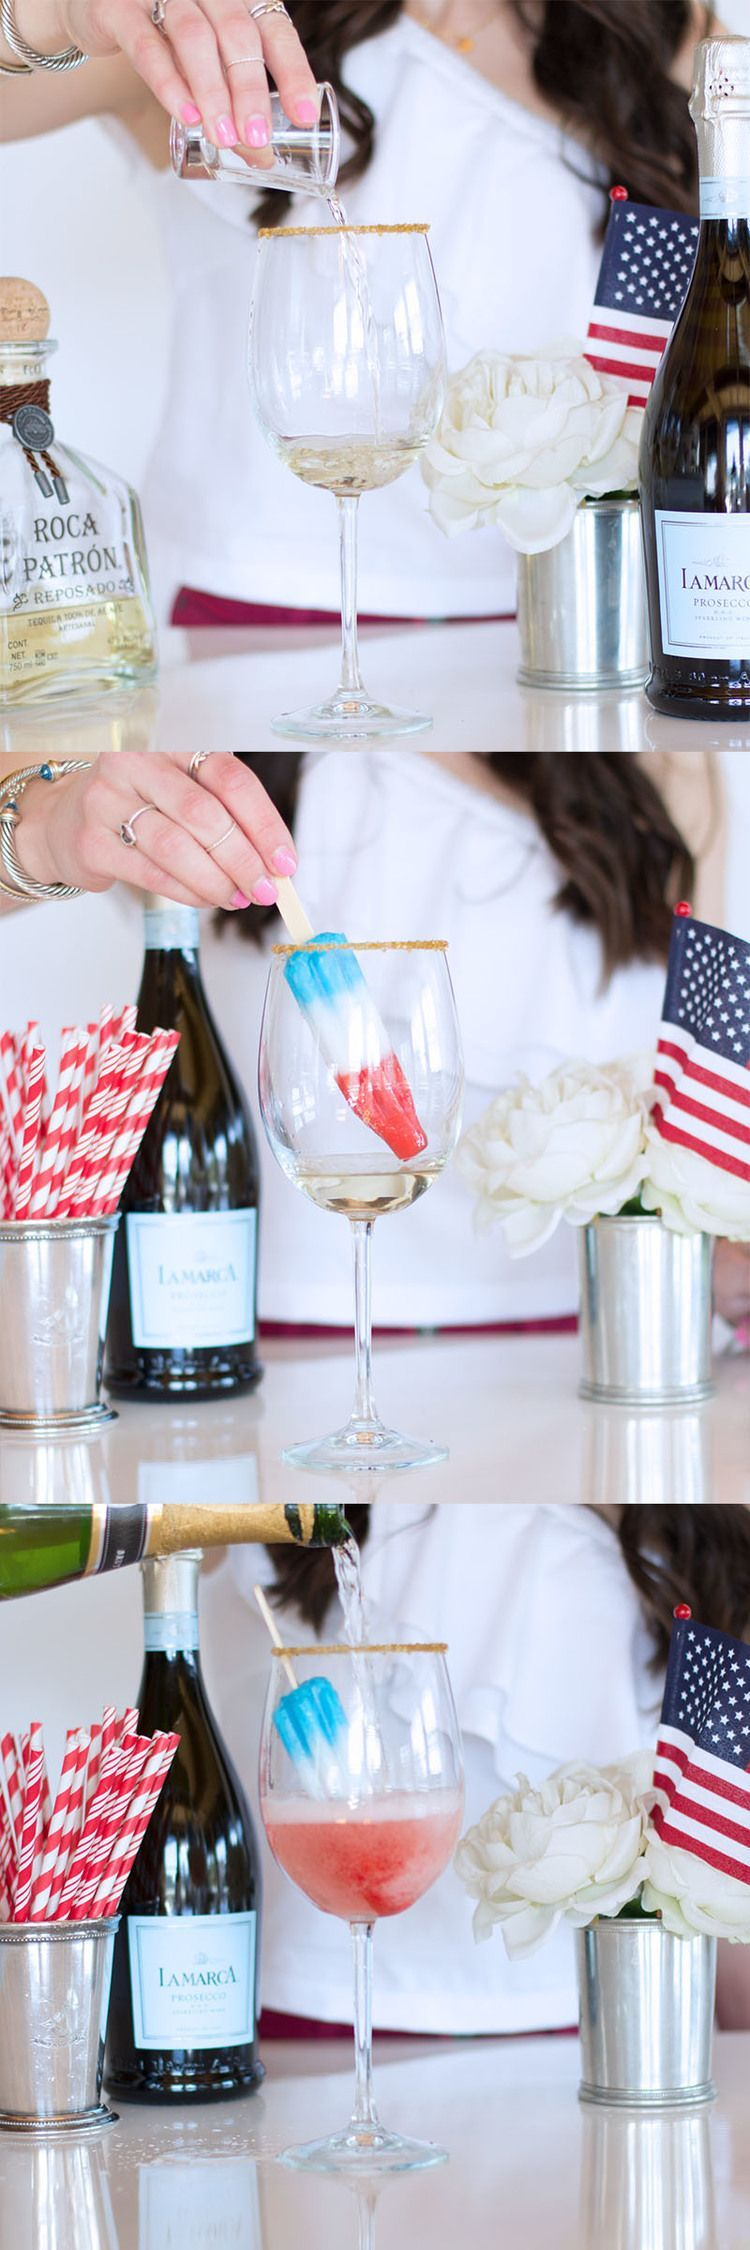 BOOZY POPSICLE DRINKS TO MAKE JULY 4TH EVEN COOLER #champagnepopsicles July 4th Cocktails, Prosecco Popsicle Cocktails for the Fourth of July, Red, White, and Blue Champagne Cocktail for Independence Day on www.me-and-mrjones.com! #champagnepopsicles